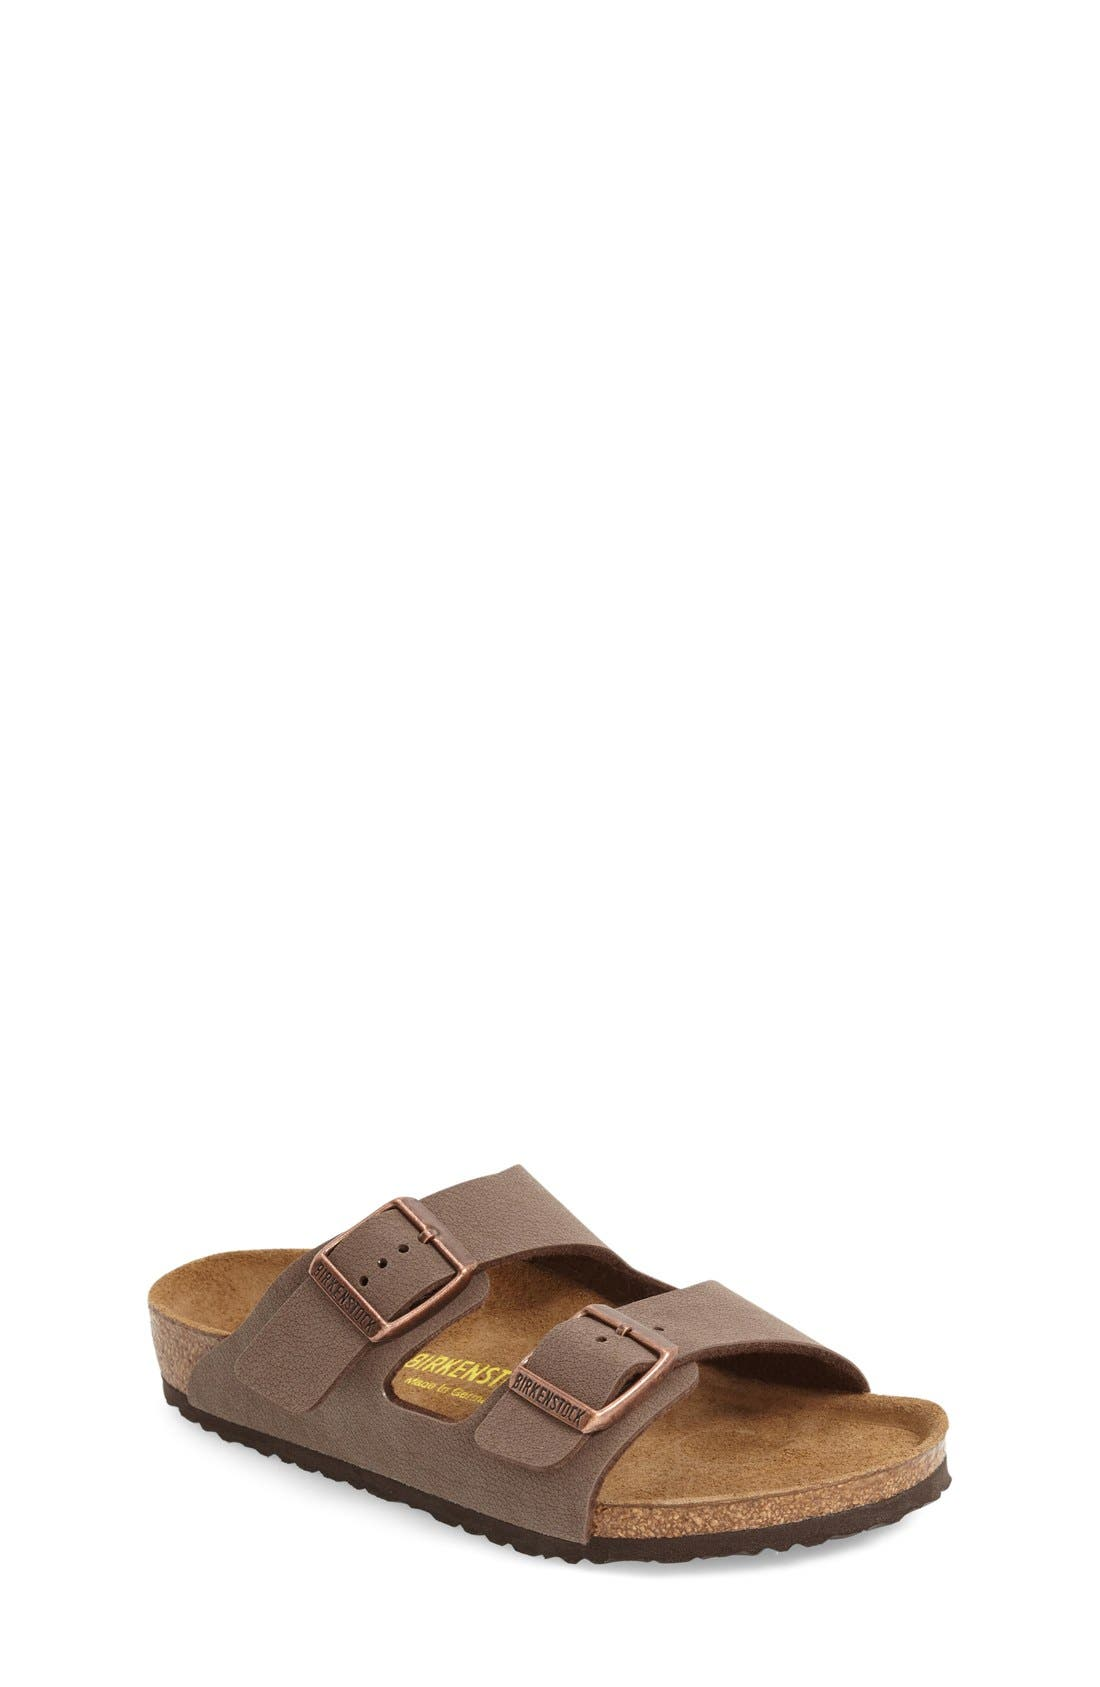 'Arizona' Suede Sandal, Main, color, MOCHA